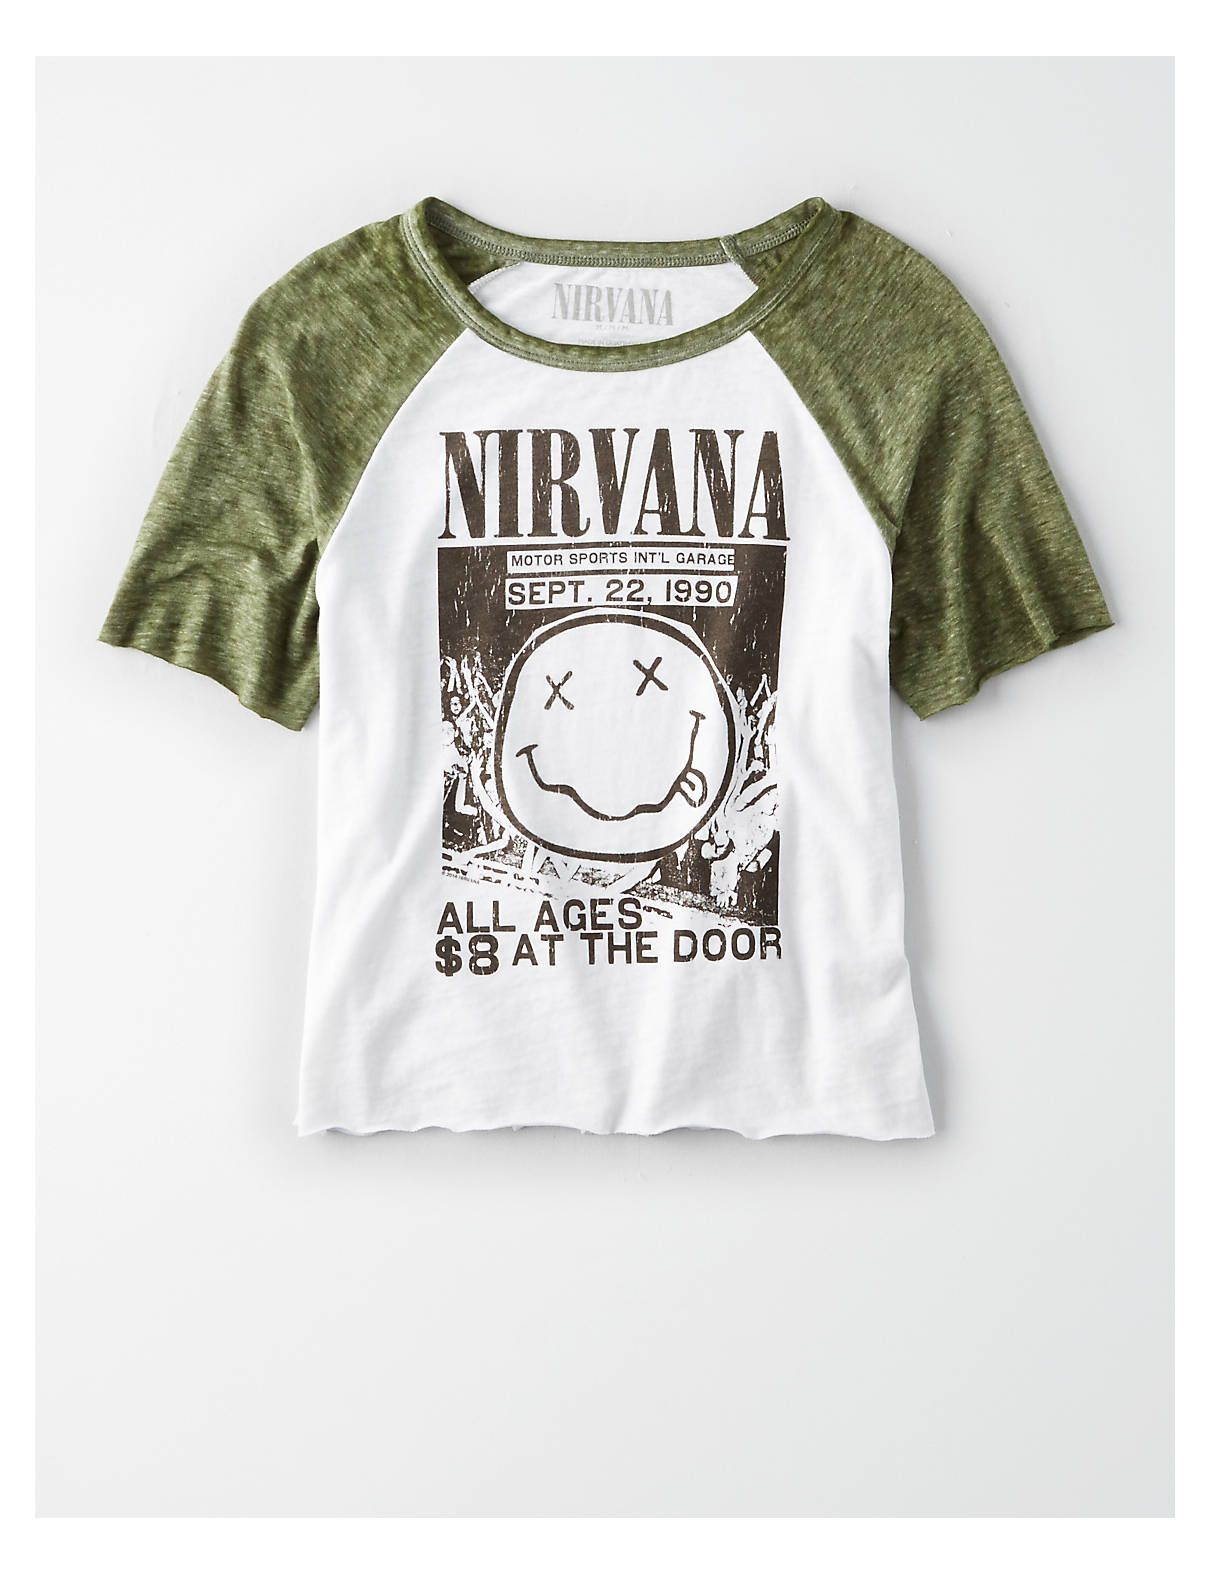 08e65bf29 AE Nirvana Graphic Tee, Olive | American Eagle Outfitters. American Eagle  Outfitters Men's & Women's Clothing ...